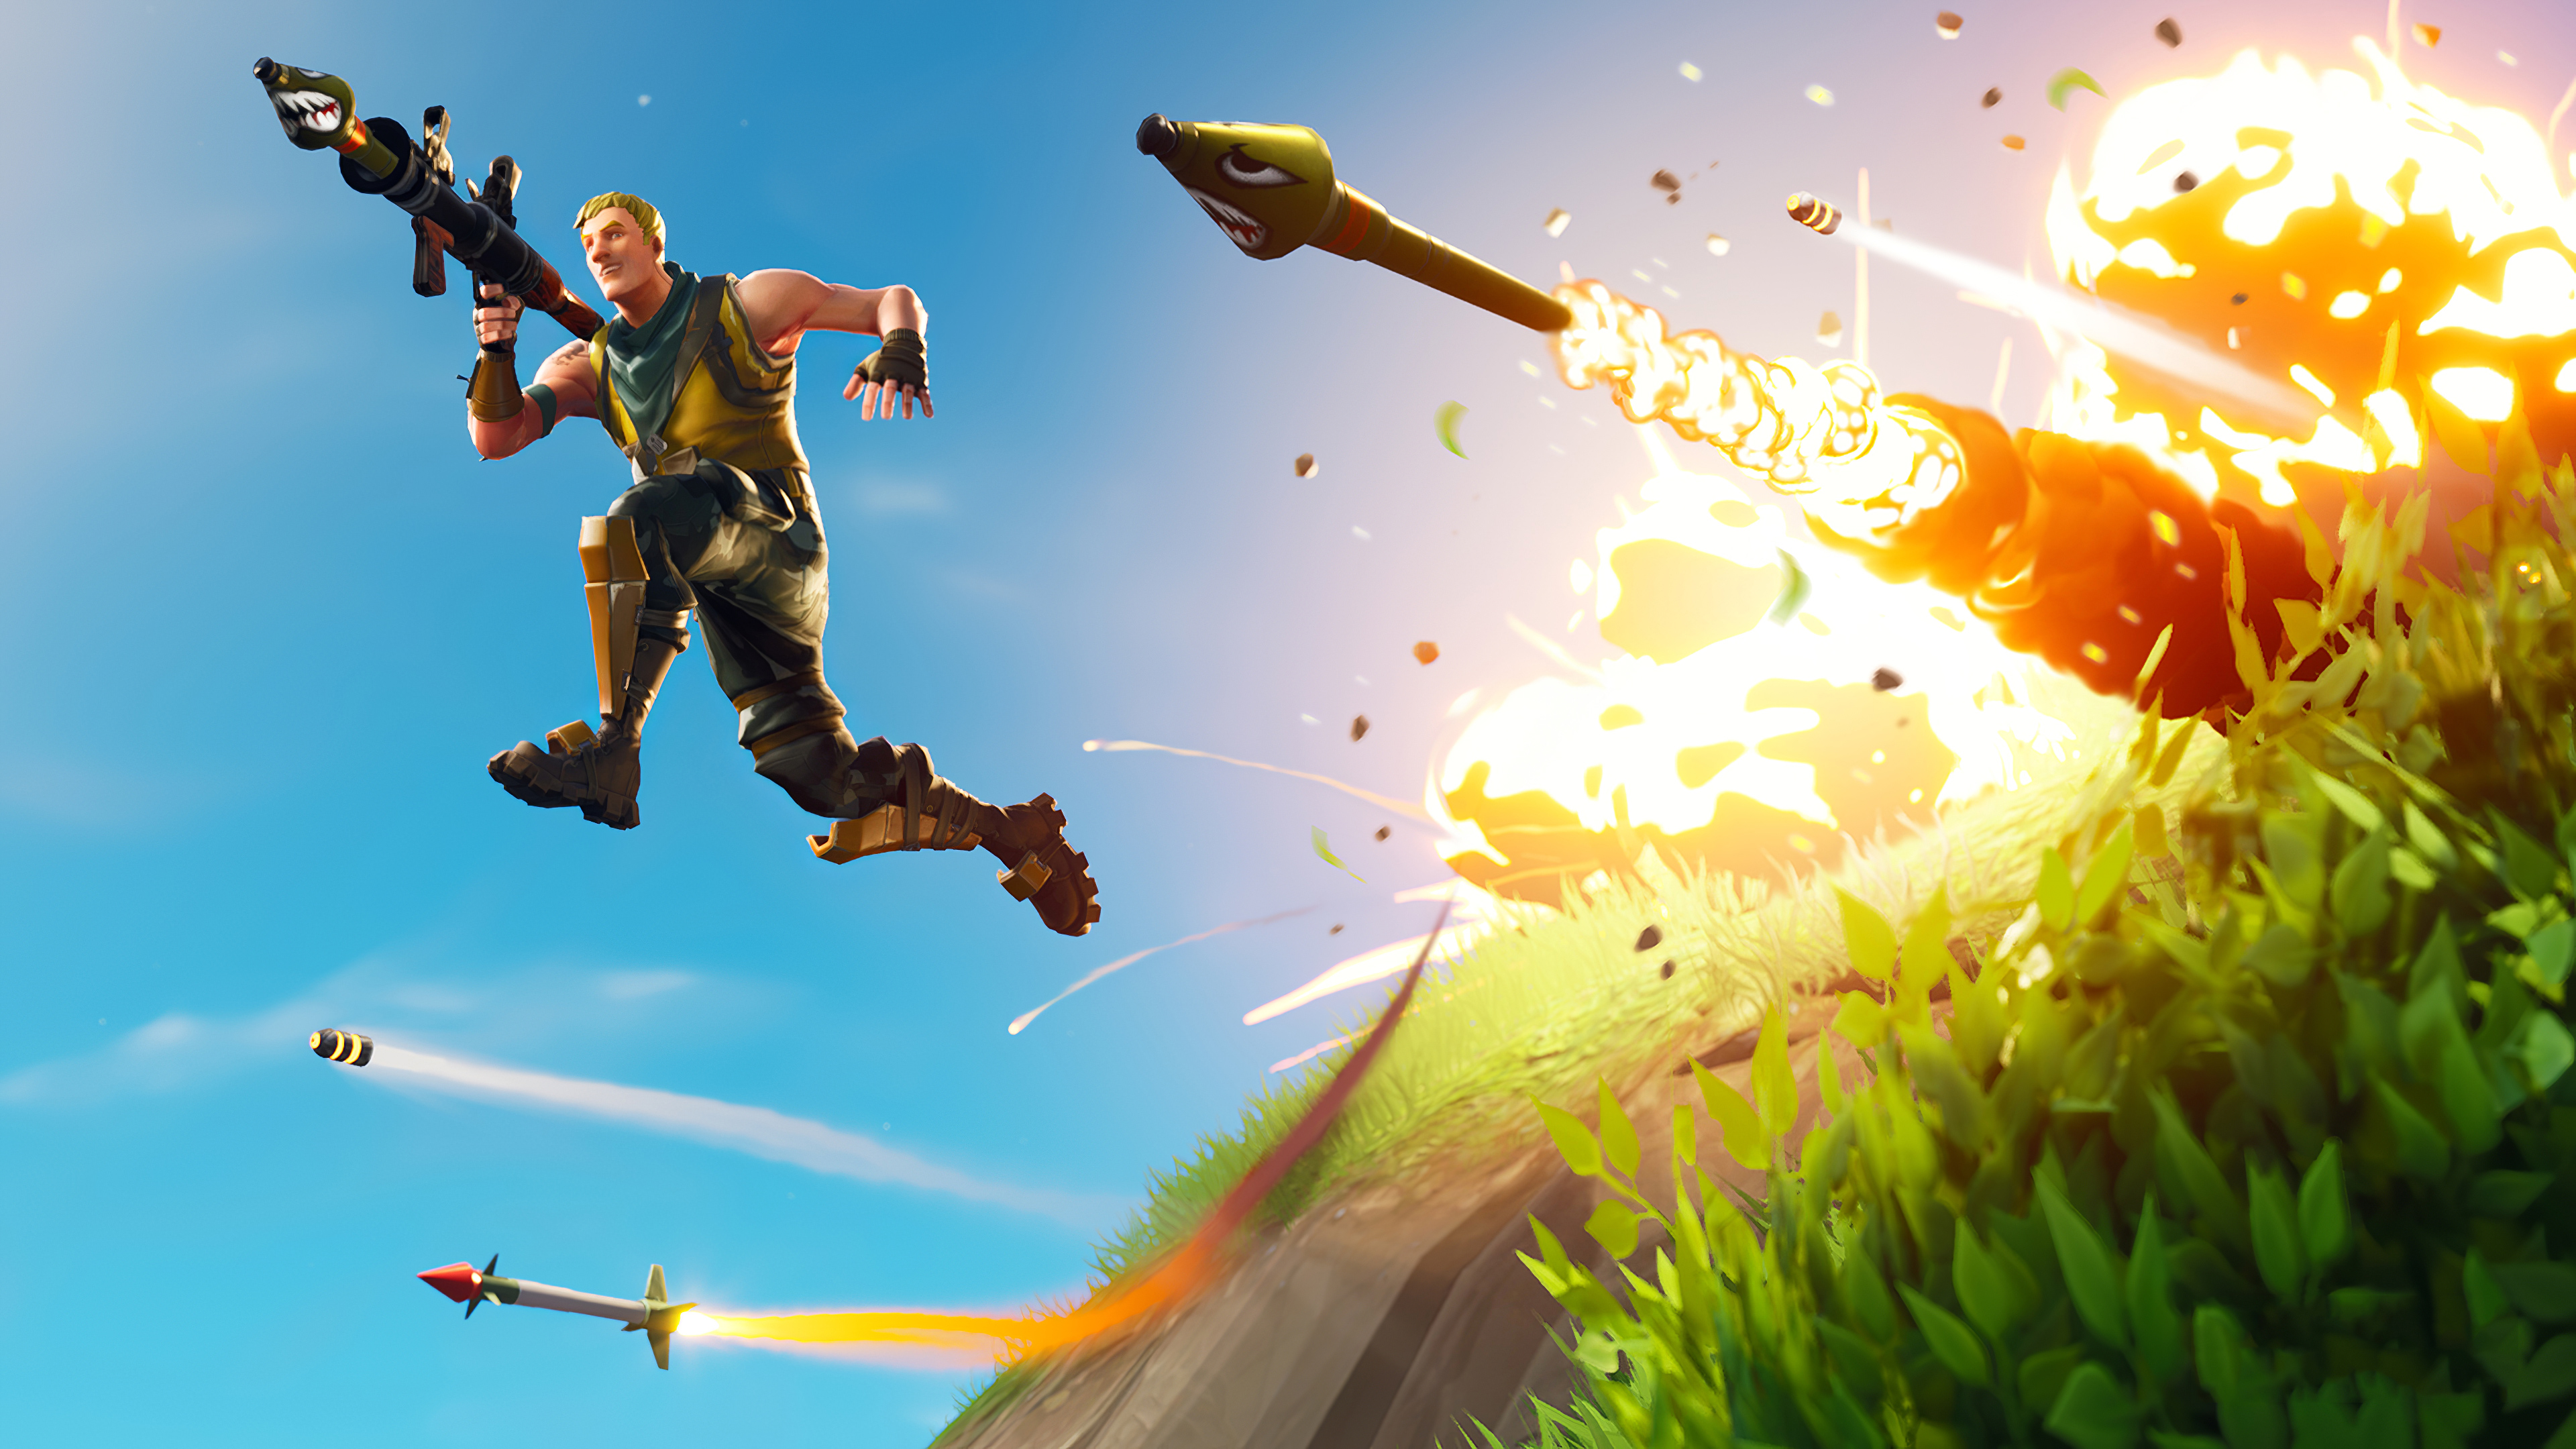 fortnite new edition 1578853986 - Fortnite New Edition - Fortnite New Edition wallpaper 4k, Fortnite New Edition 4k wallpaper, Fortnite game wallpaper 4k